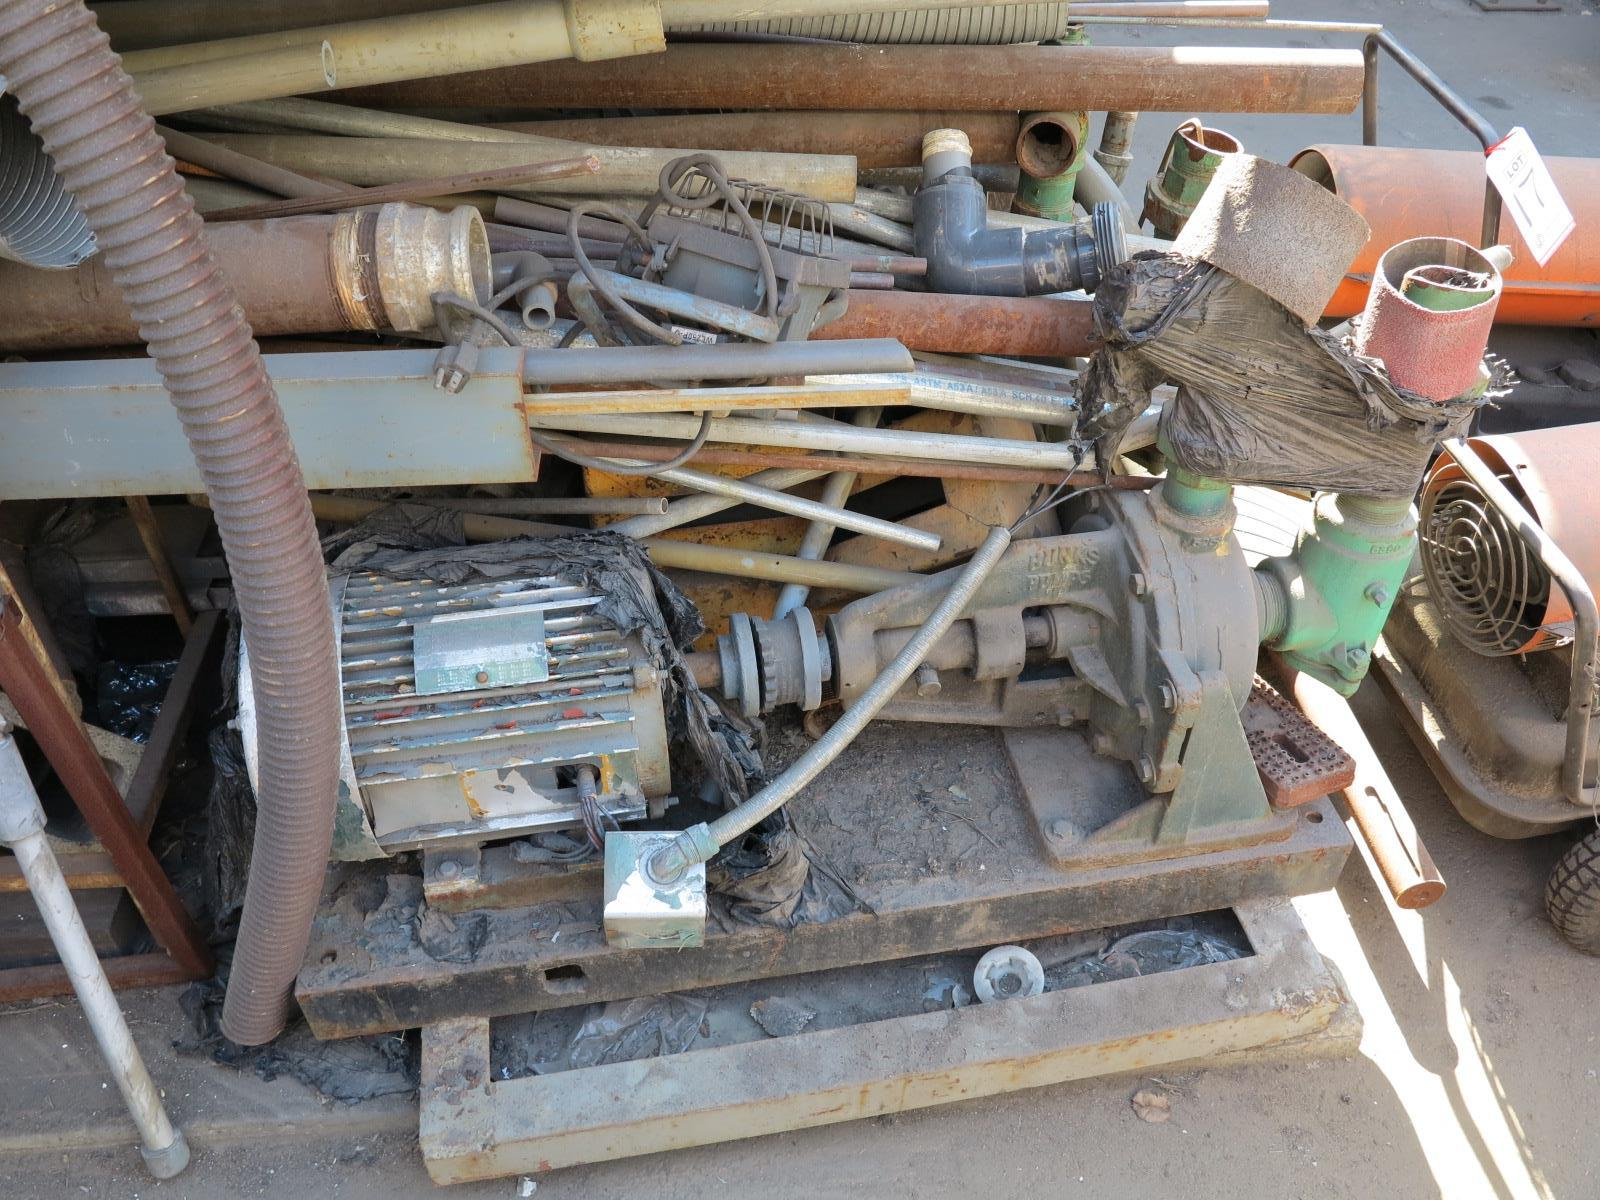 LOT - RACK W/ CONTENTS: PIPE, EMT, STEEL, (2) ELECTRIC PUMPS - Image 2 of 3